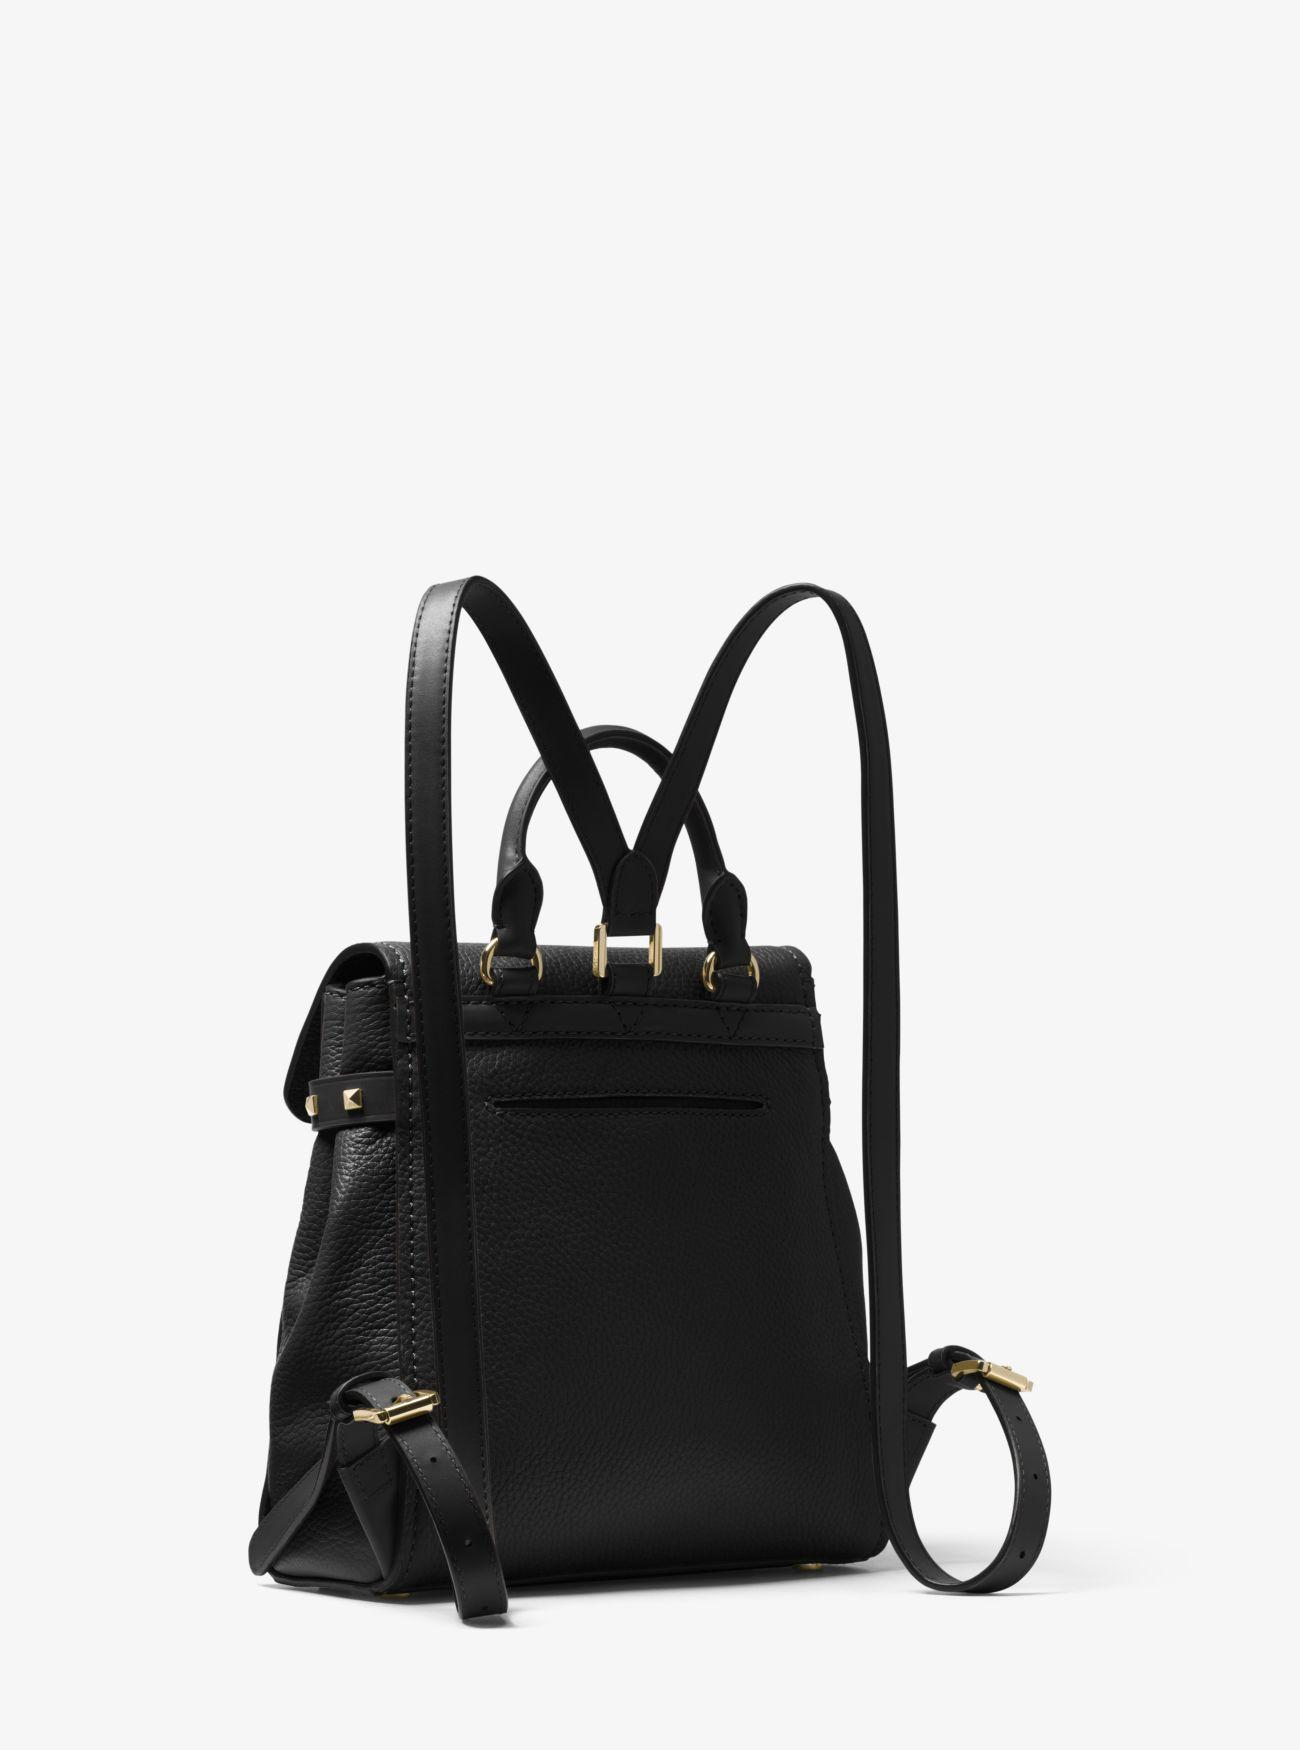 Michael Kors Addison Small Pebbled Leather Backpack in Black